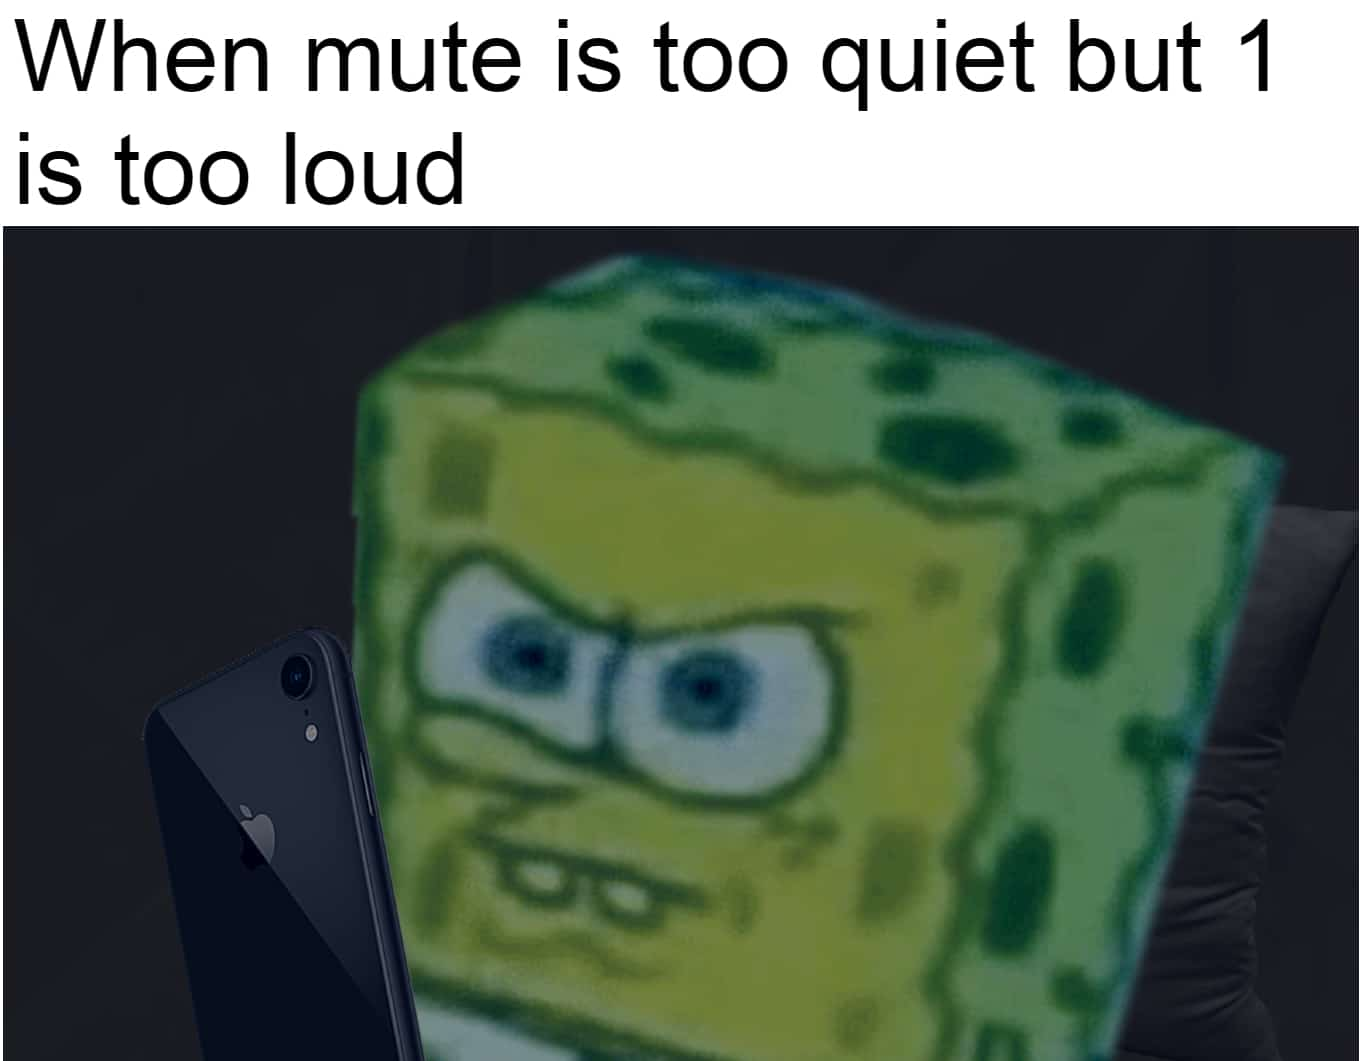 Funny, Phone, Samsung, Mac, Android, TV other memes Funny, Phone, Samsung, Mac, Android, TV text: When mute is too quiet but 1 is too loud